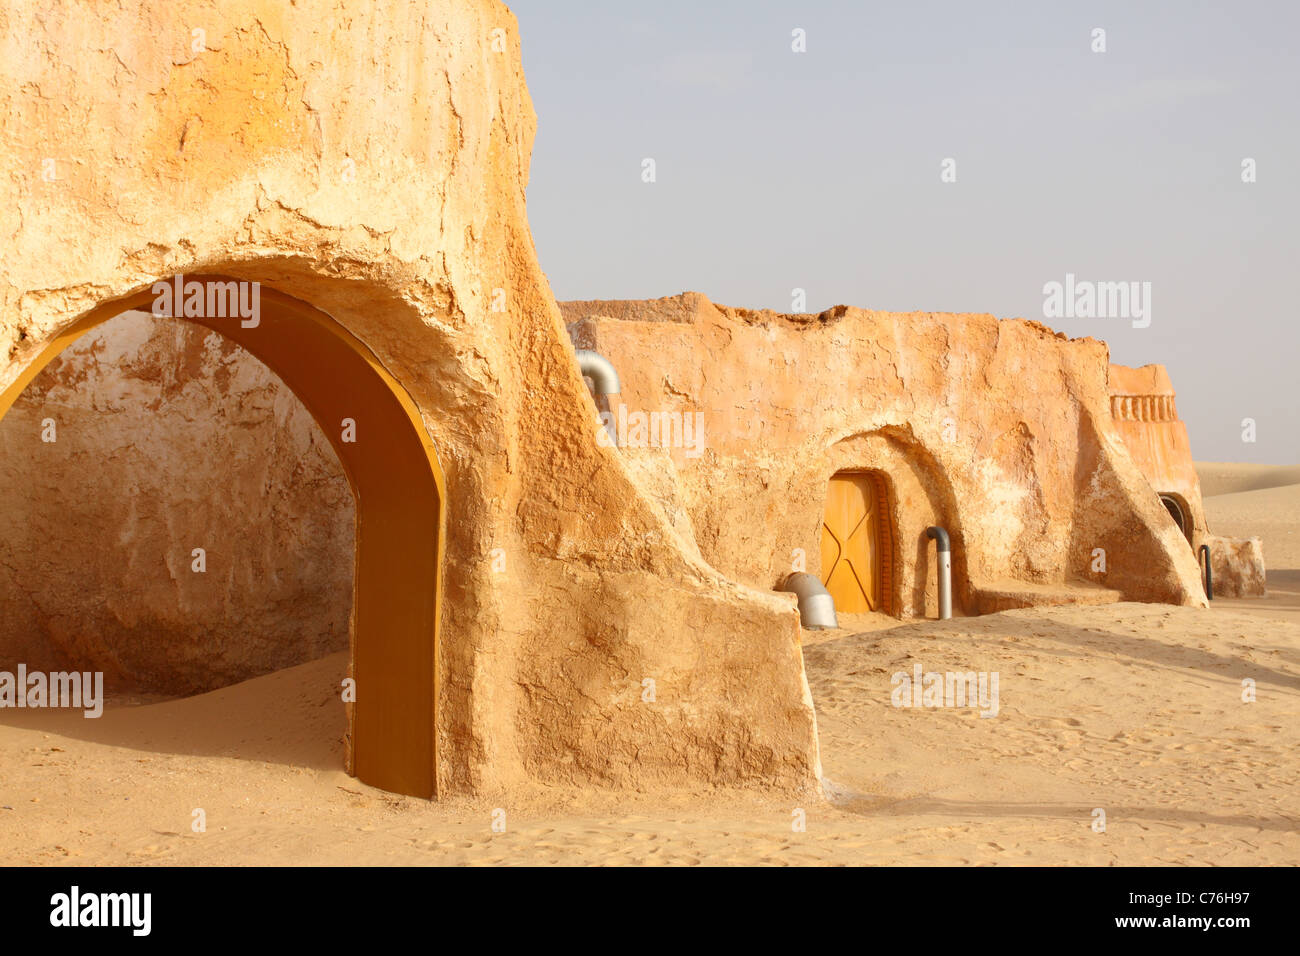 Le décor pour le film Star Wars en Tunisie Photo Stock